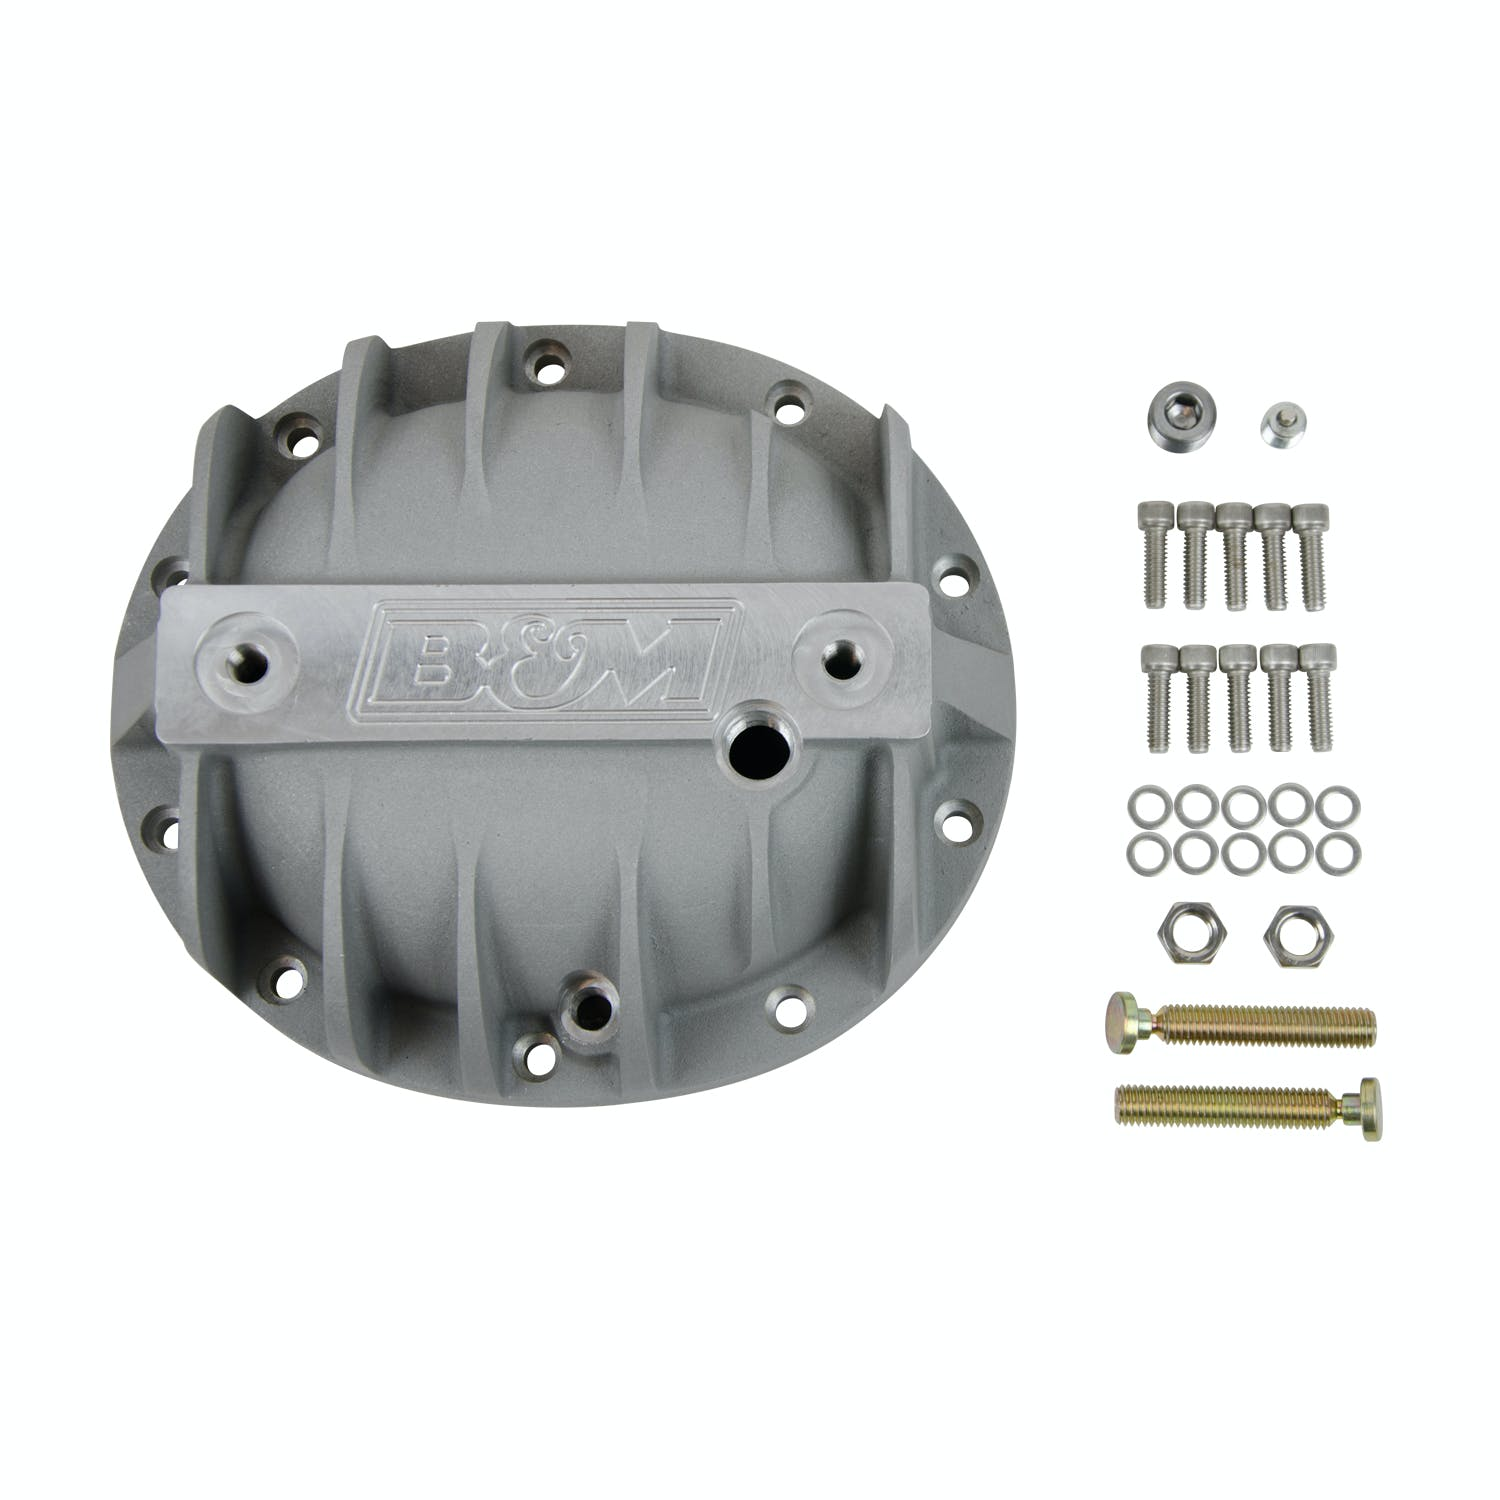 Dana 35 rear ends CSI 1342 Chromed Steel Differential Cover